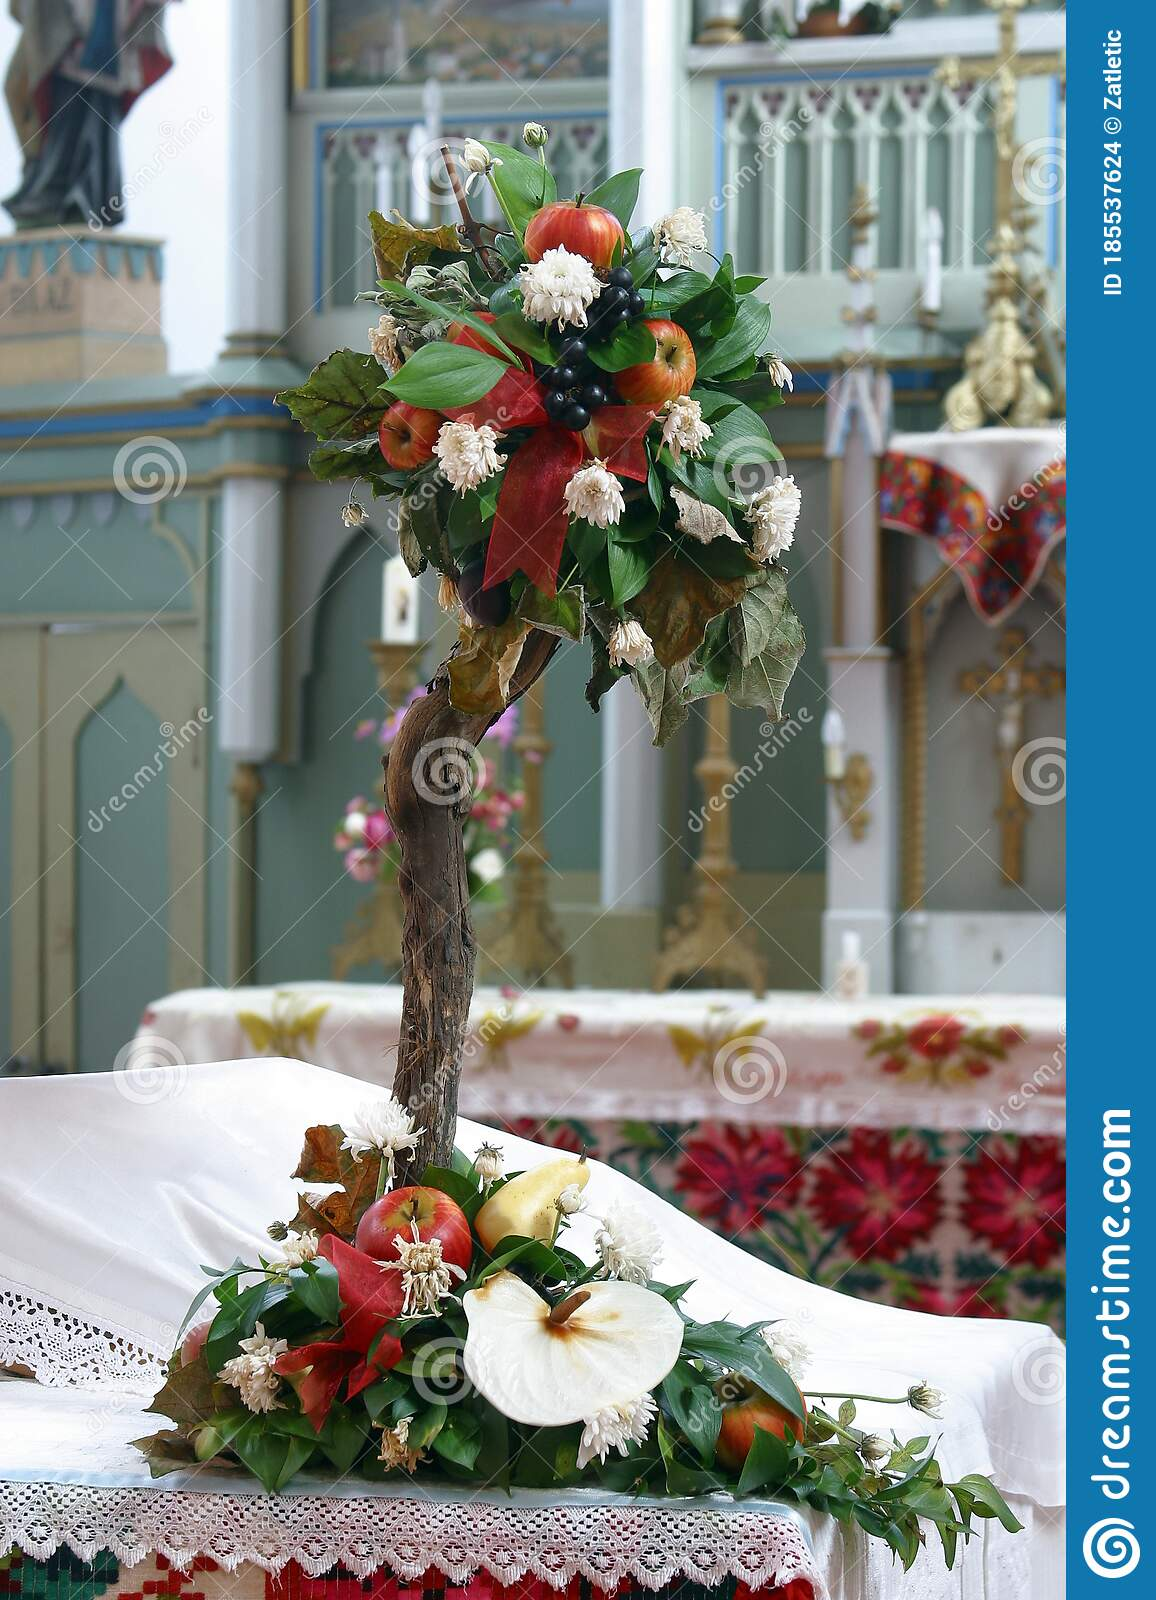 5 737 Flower Altar Photos Free Royalty Free Stock Photos From Dreamstime